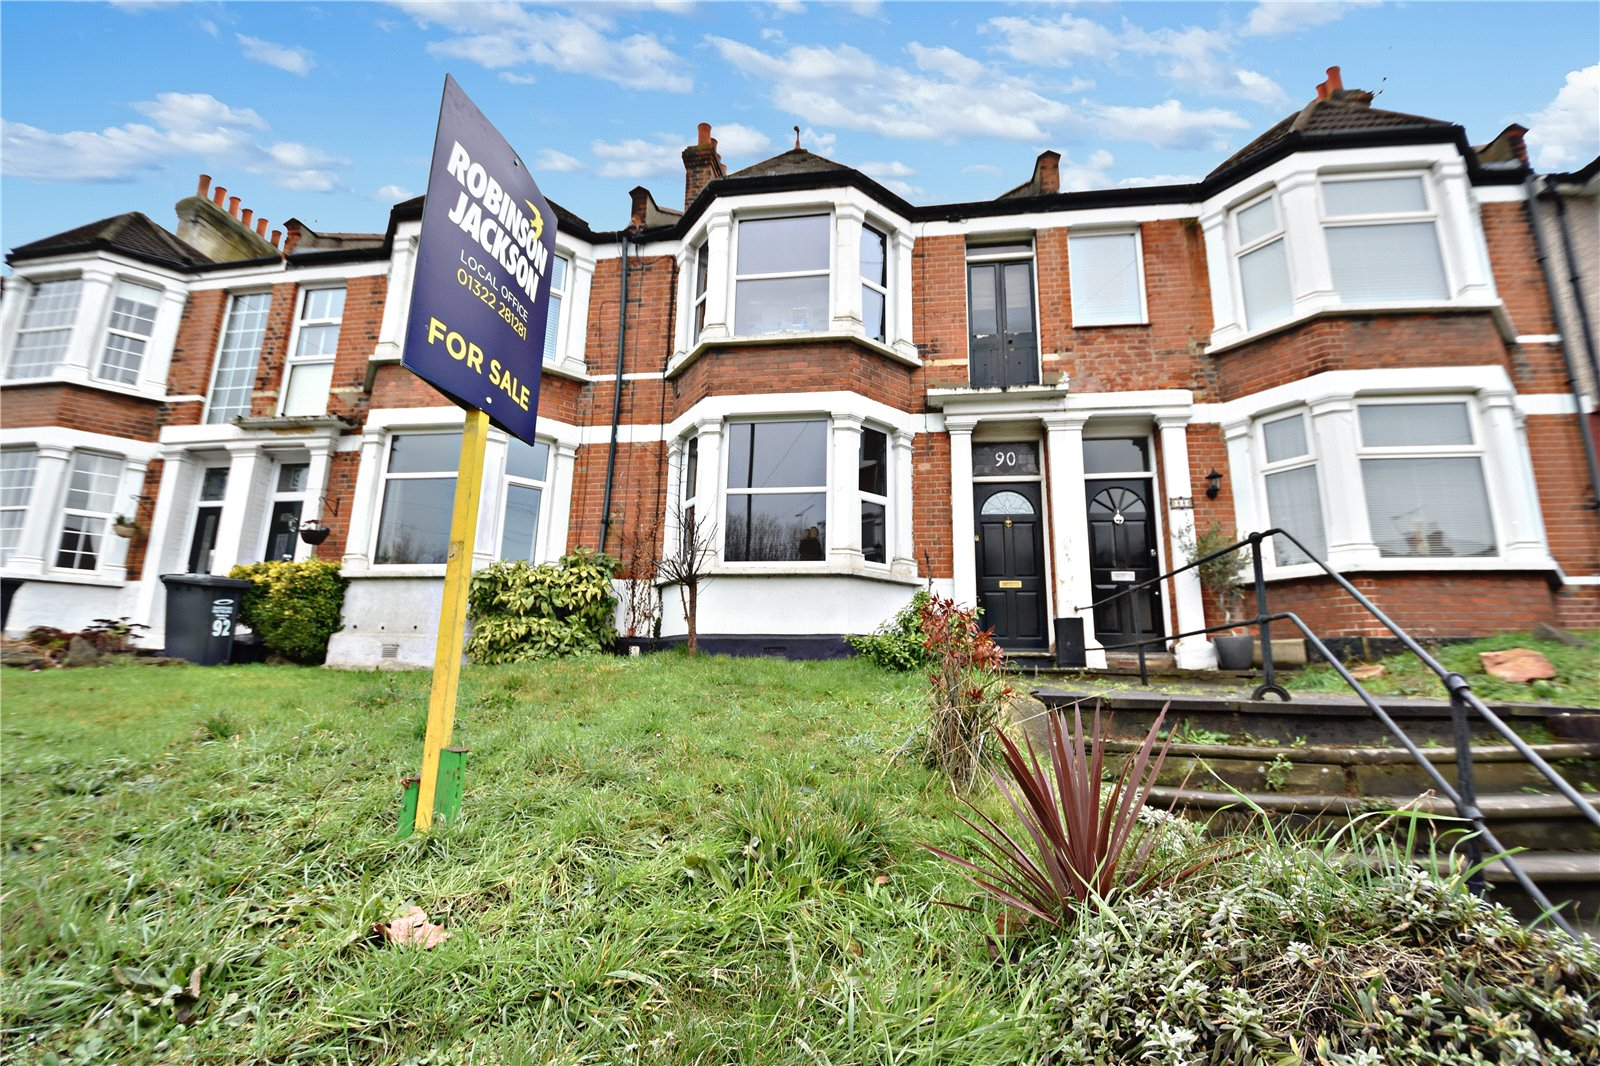 Hawley Road, Wilmington, Dartford, Kent, DA1